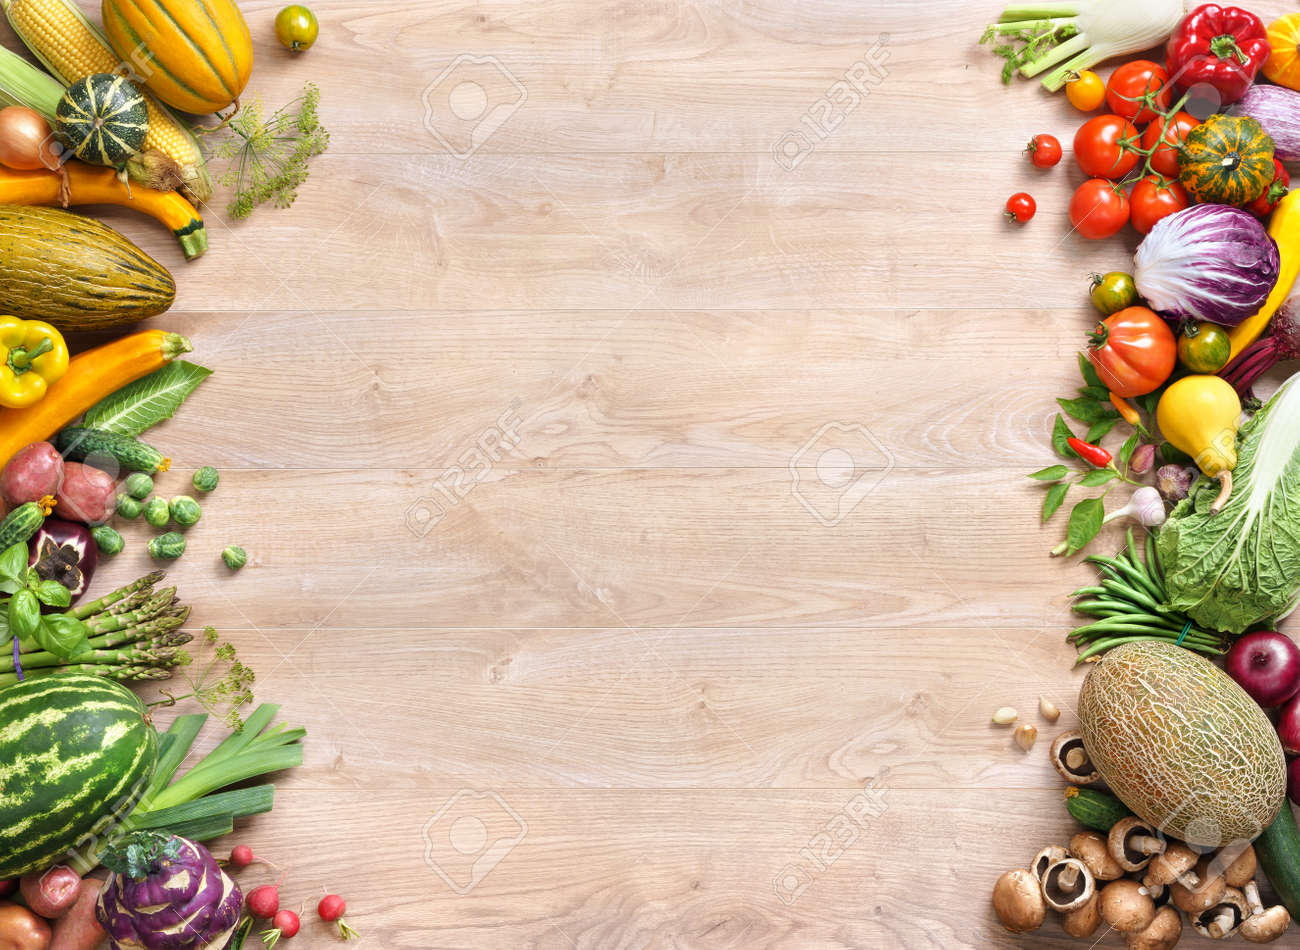 Food background studio photo of different fruits and vegetables - Healthy Food Background Studio Photo Of Different Fruits And Vegetables On Old Wooden Table Stock